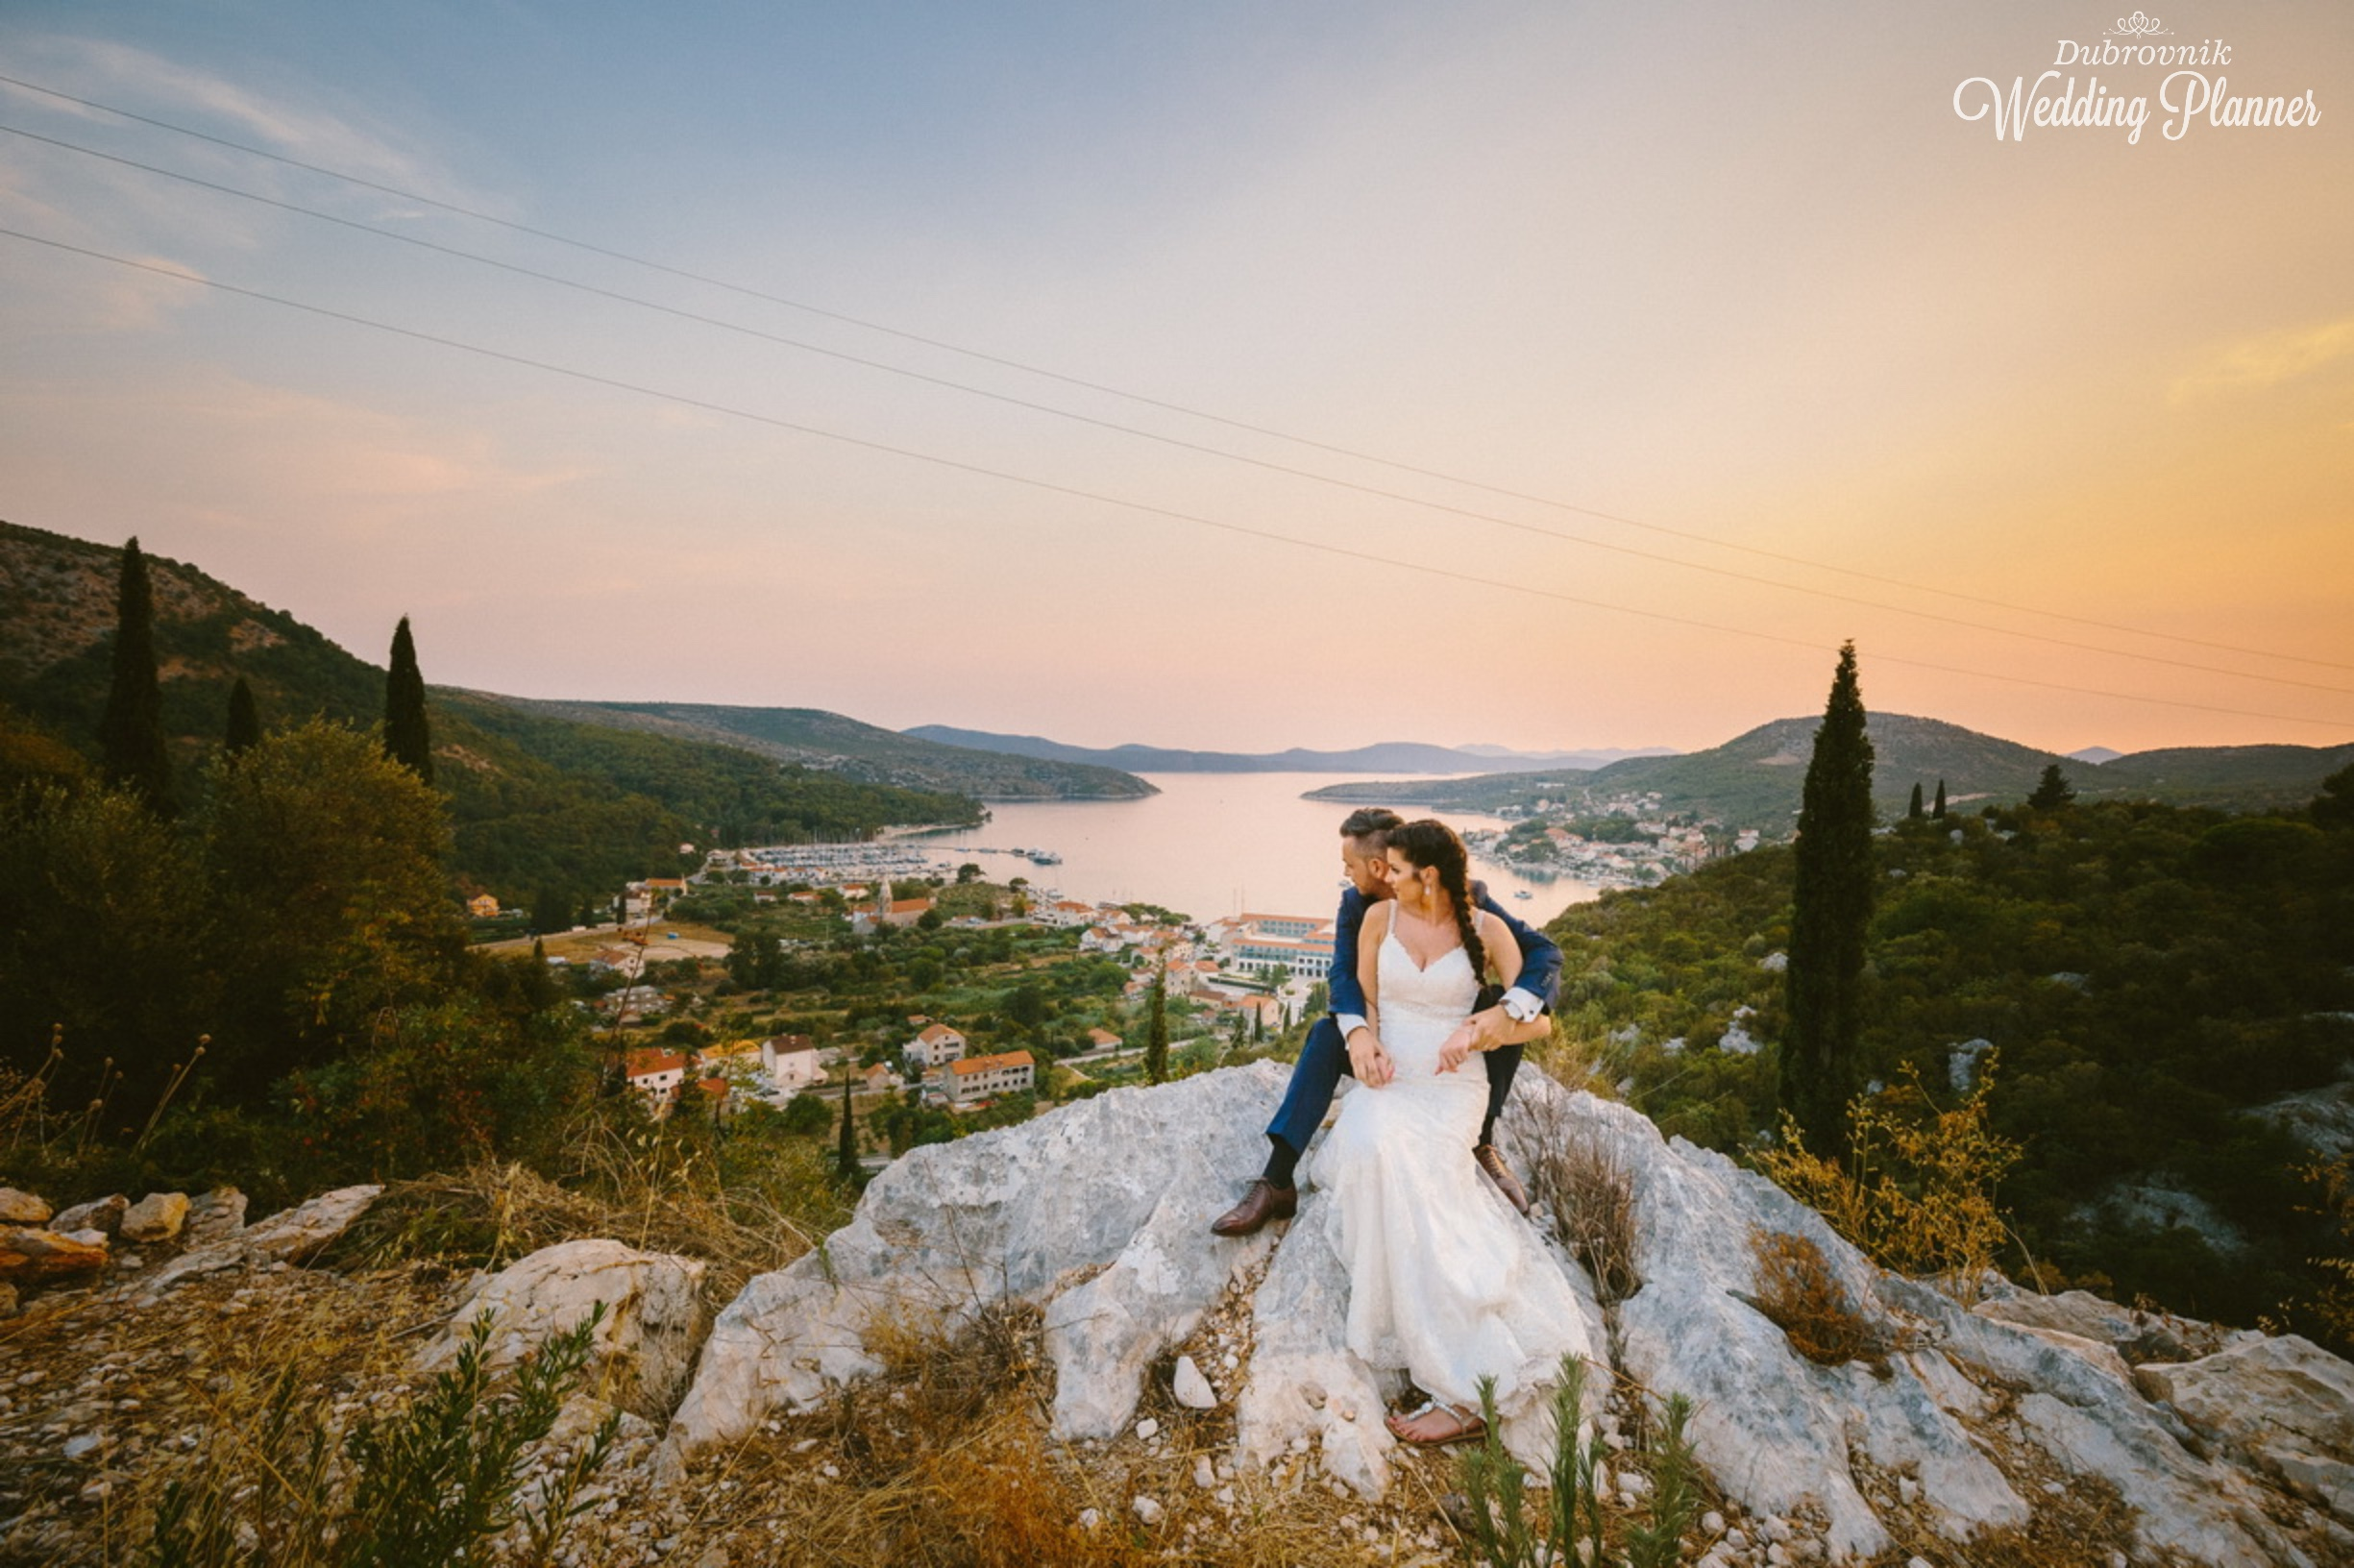 Dajana & Sebastian - To show appreciation to each other, they had two ceremonies. First in front of God as witness, and after they had an intimate wedding at Park with amazing view where they could share their vows in the most romantic way. August 2017